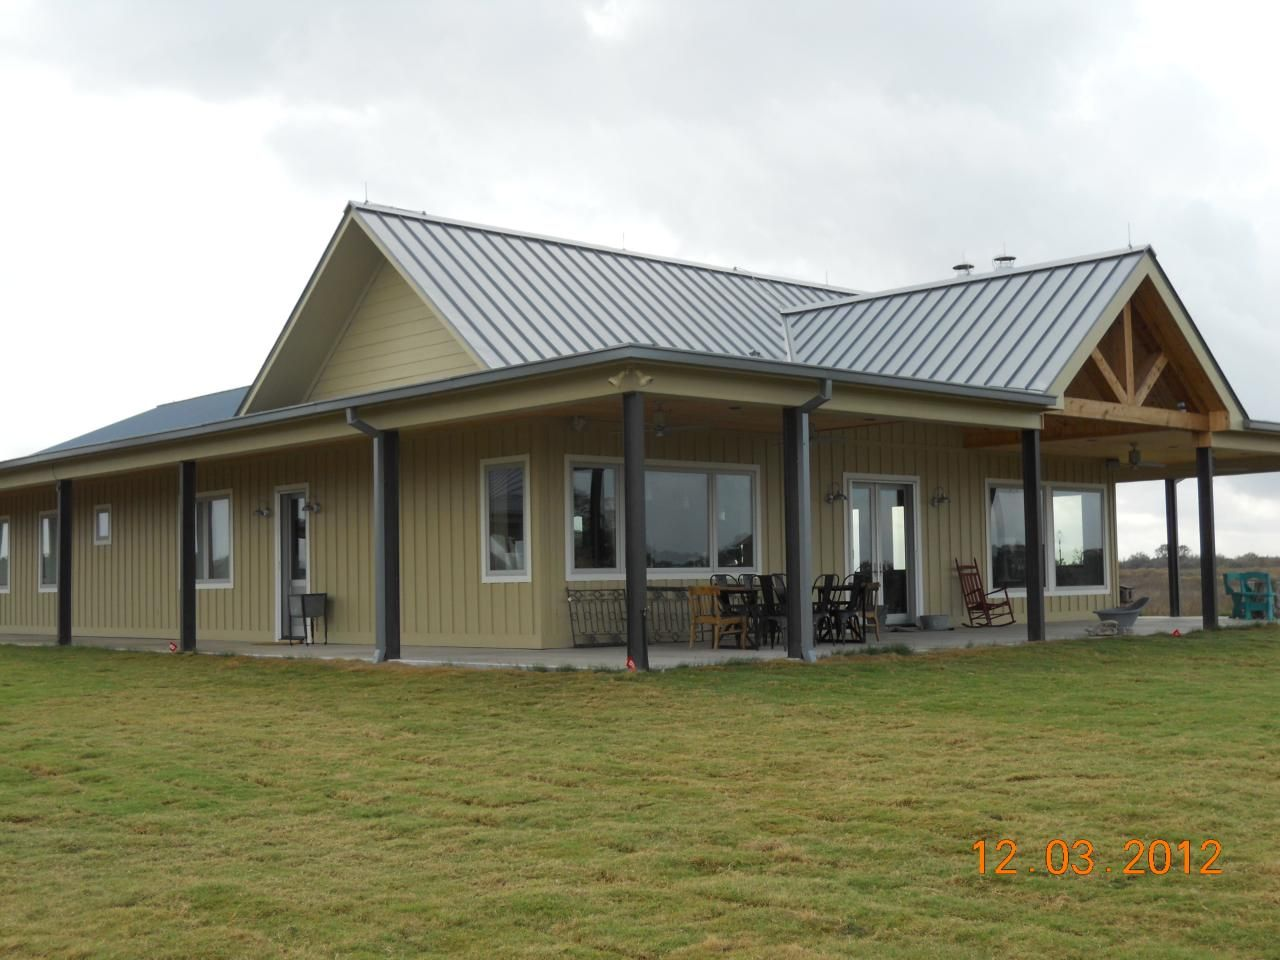 Texas barndominium house plans picture gallery custom Metal pole barn homes plans